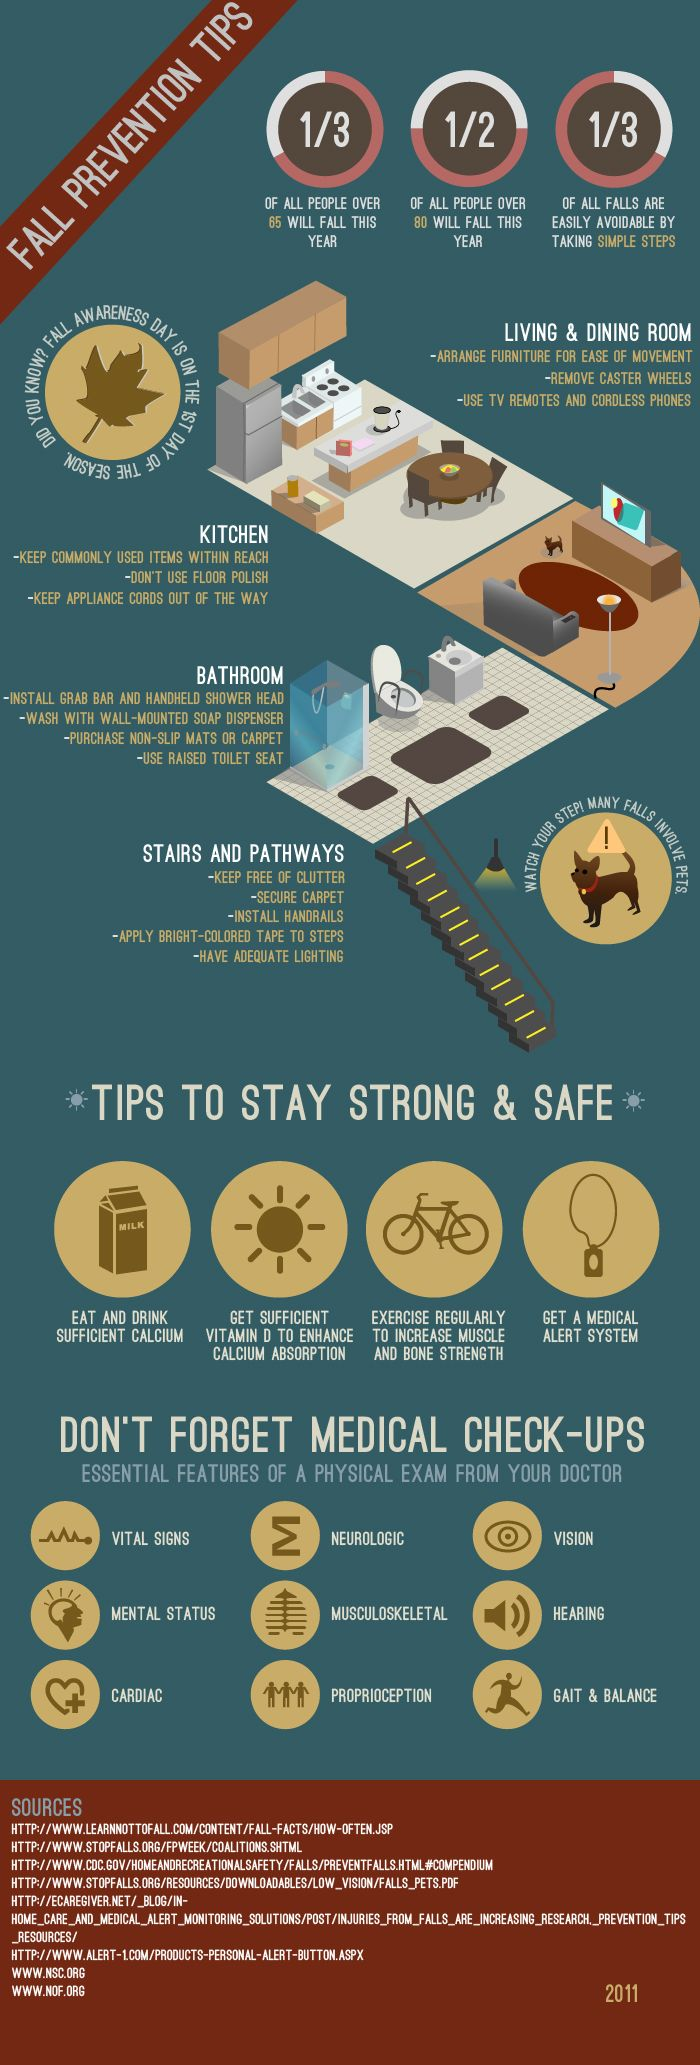 Tip1 Falls Prevention Check your home for tripping and